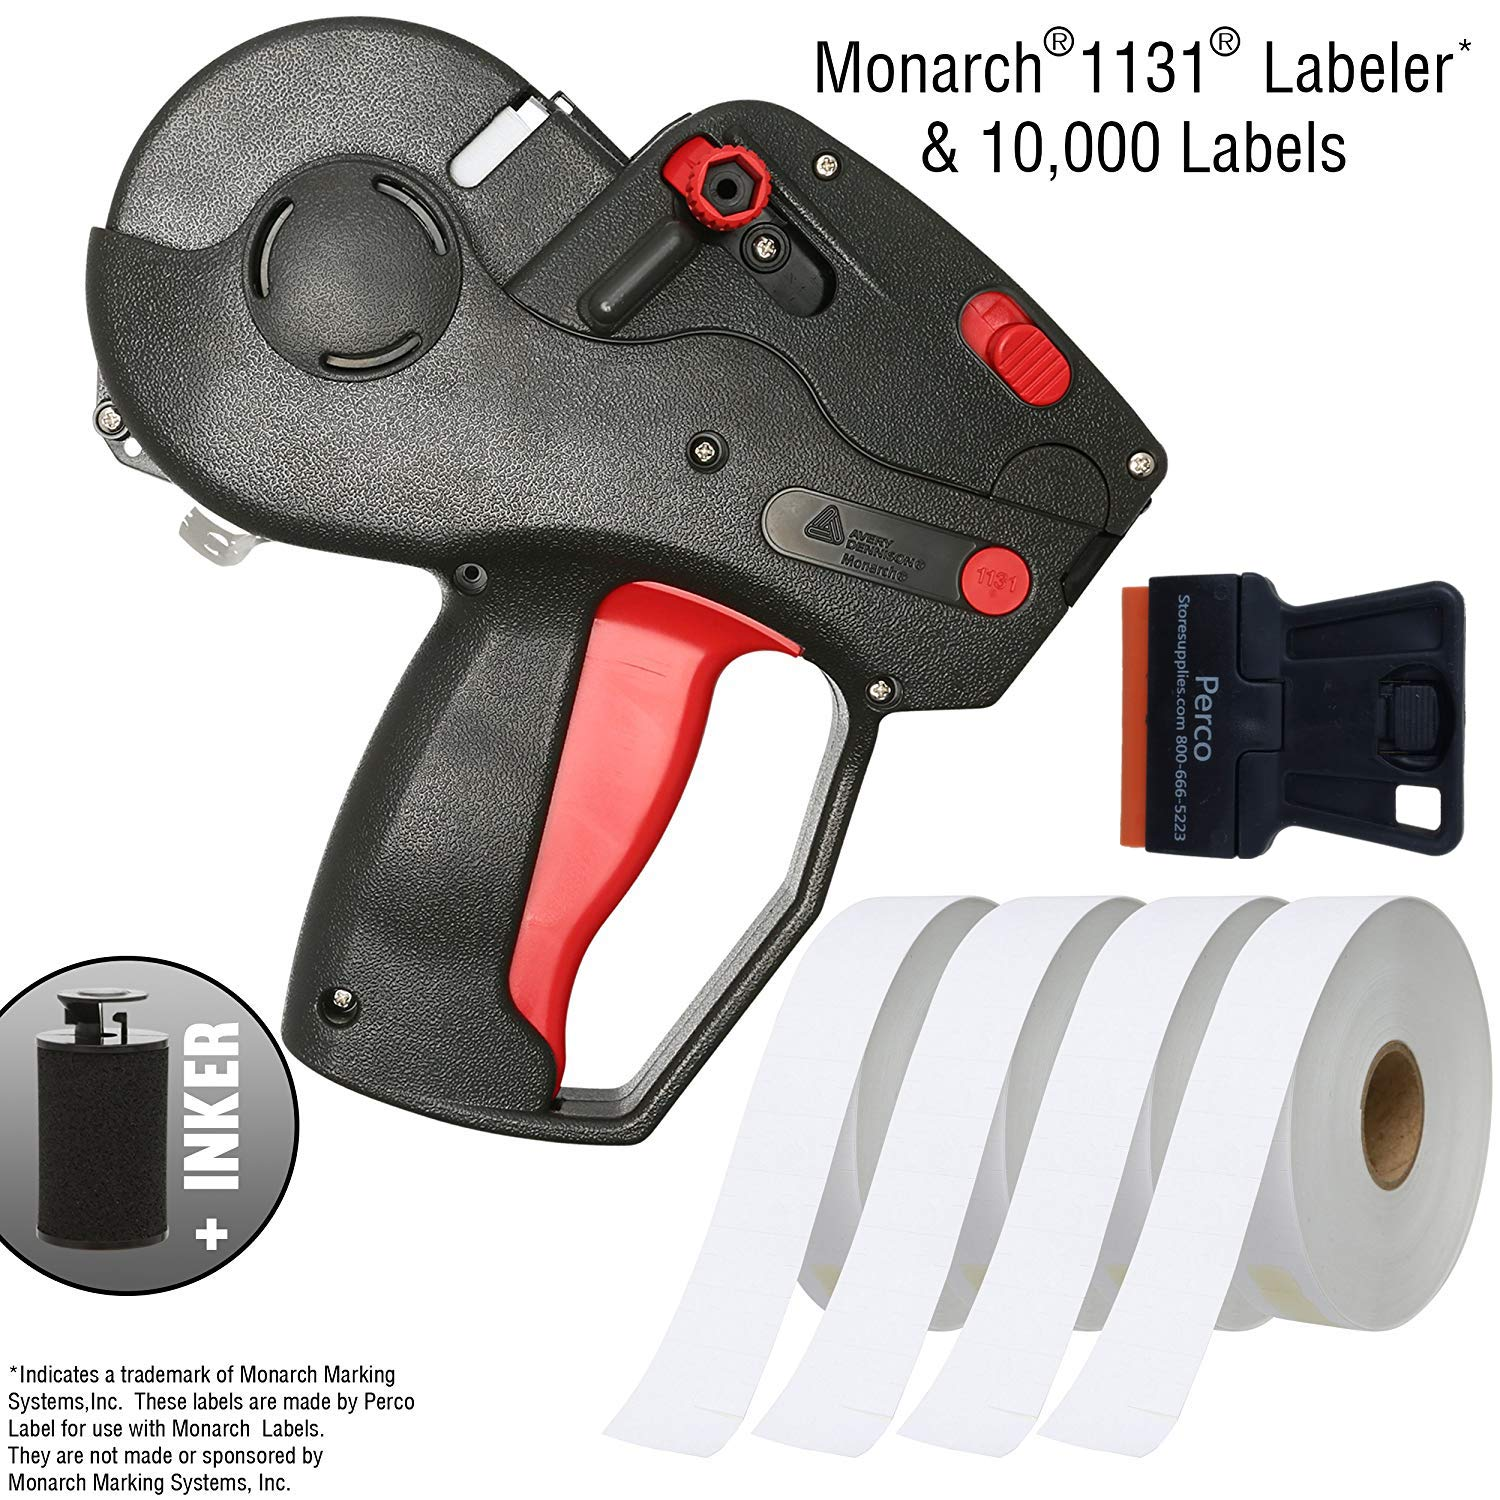 Monarch 1131 Price Gun With Labels Starter Kit: Includes Pricing Gun, 10,000 White Pricing Labels, and Preloaded Inker by Perco